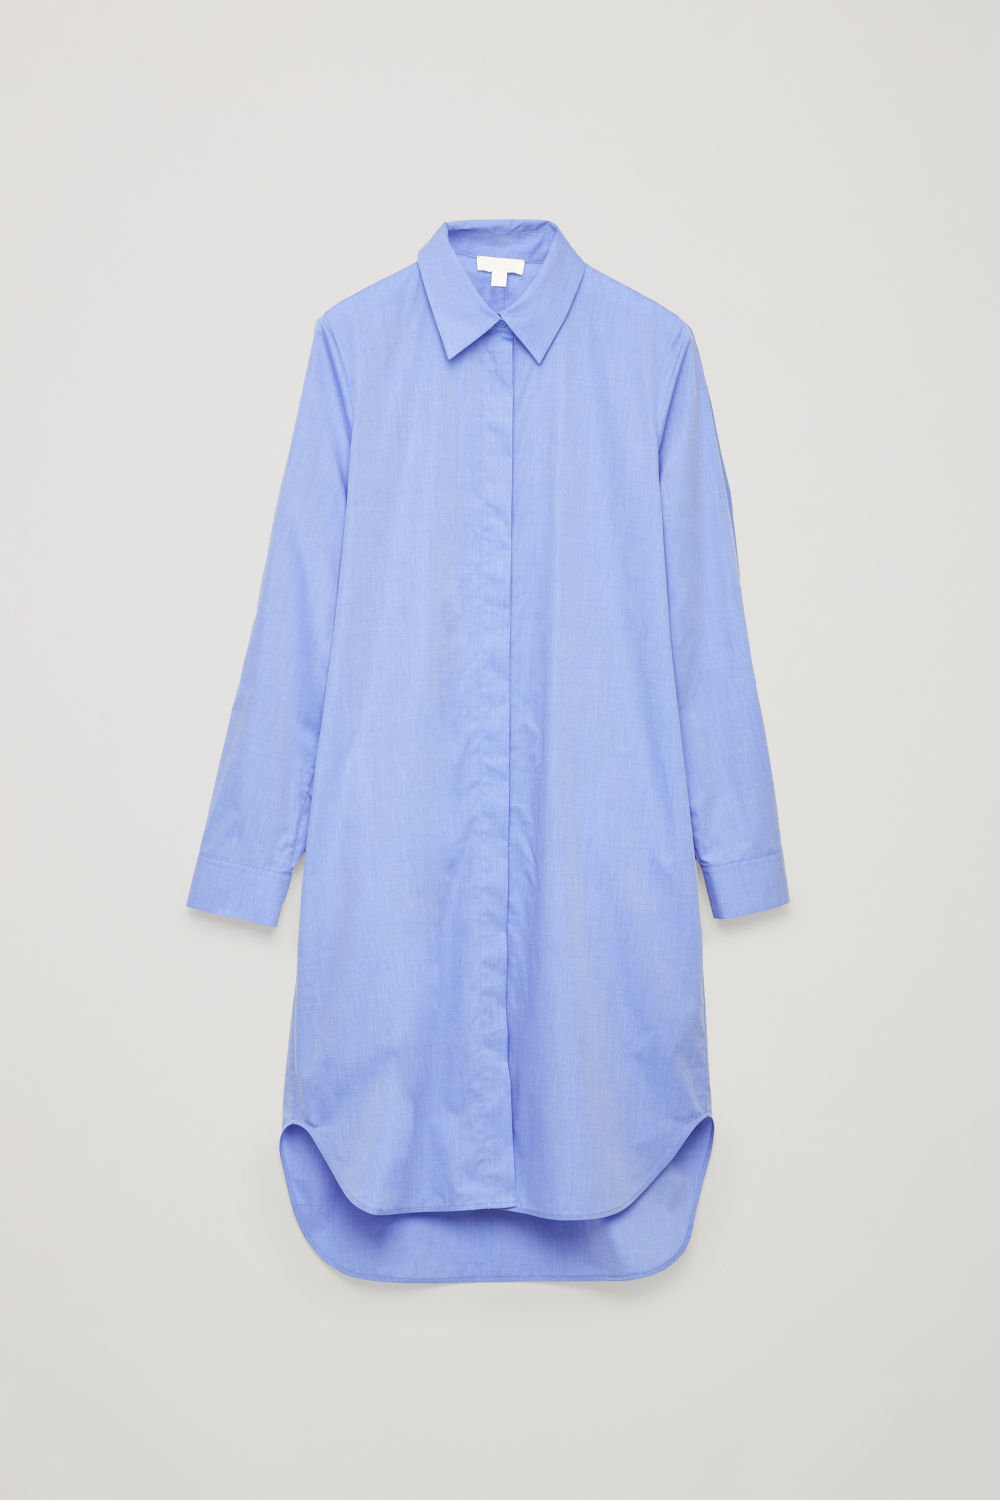 FIL-A-FIL COTTON SHIRT DRESS